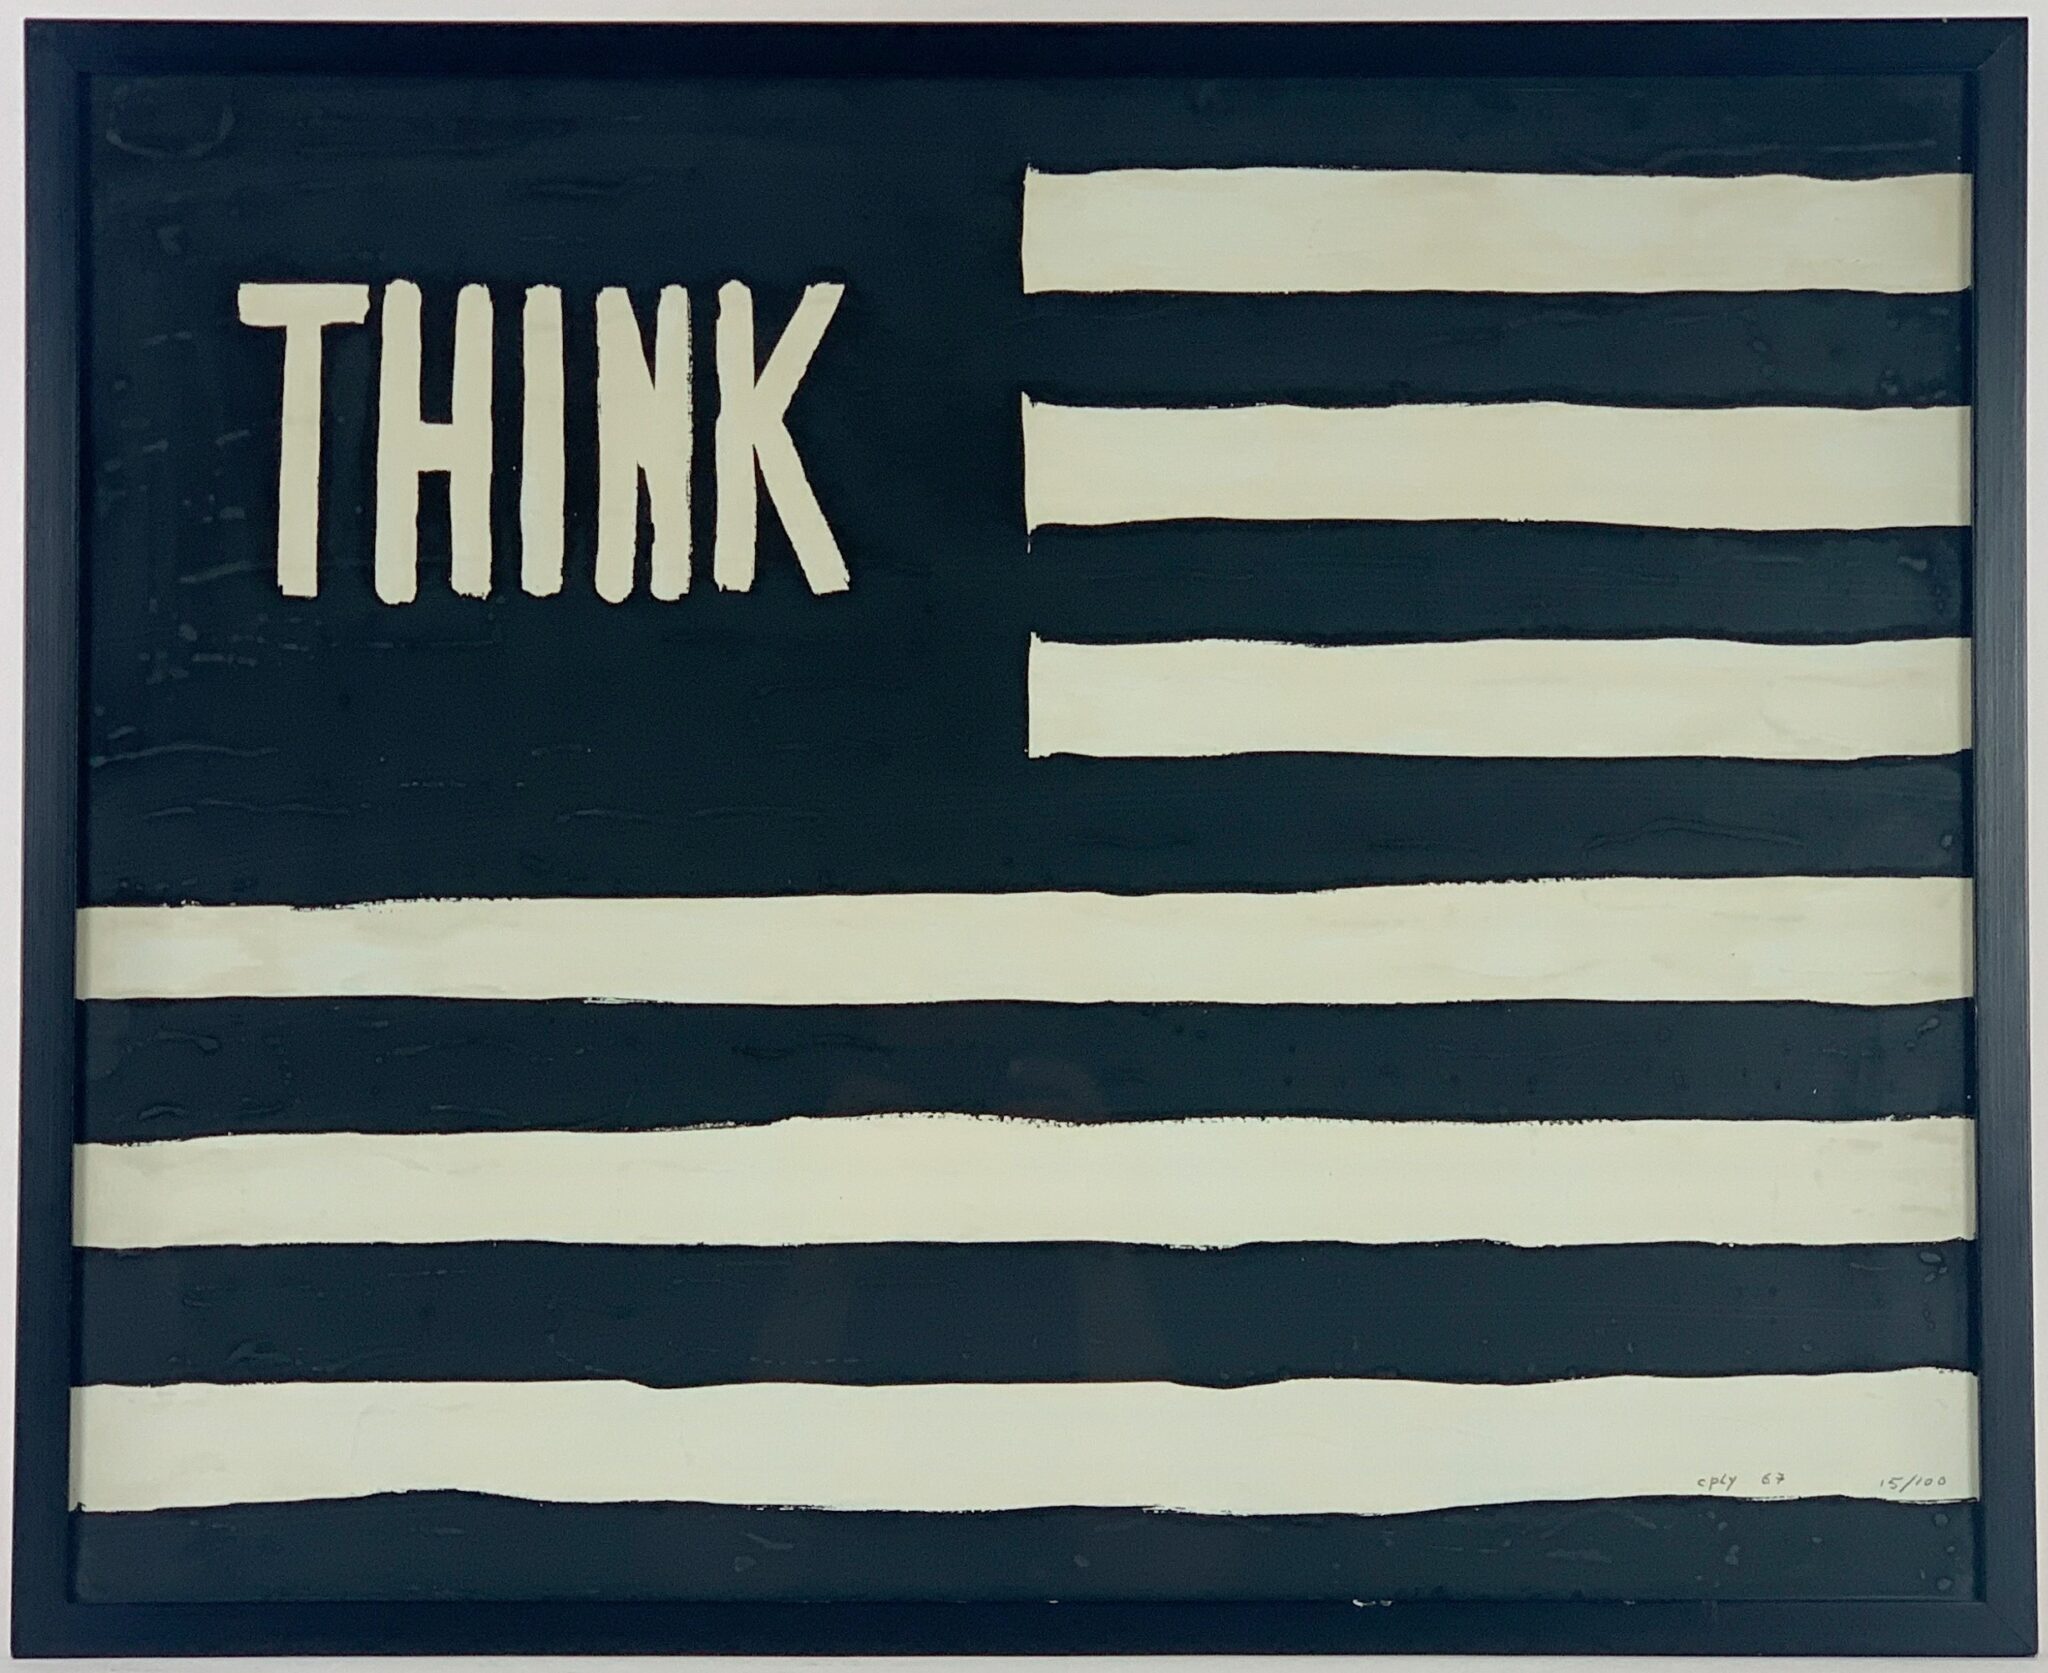 """THINK"" FLAG SCREENPRINT BY WILLIAM COPLEY 